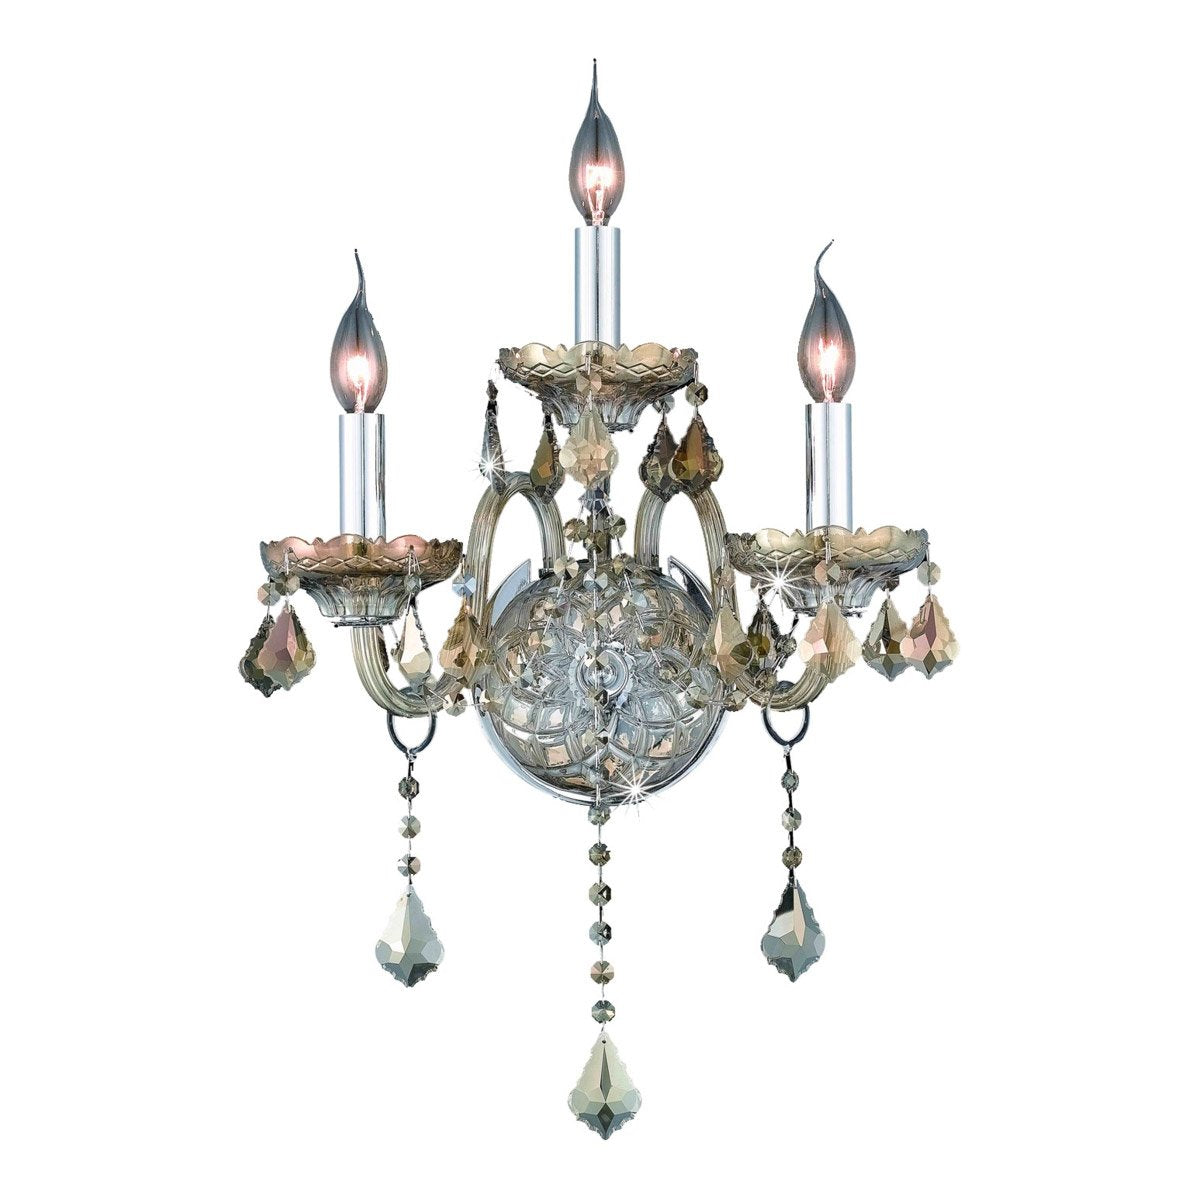 Verona 14 Crystal Wall Sconce With 3 Lights - Golden Teak Finish And Smokey / Swarovski Elements Crystal Wall Sconce